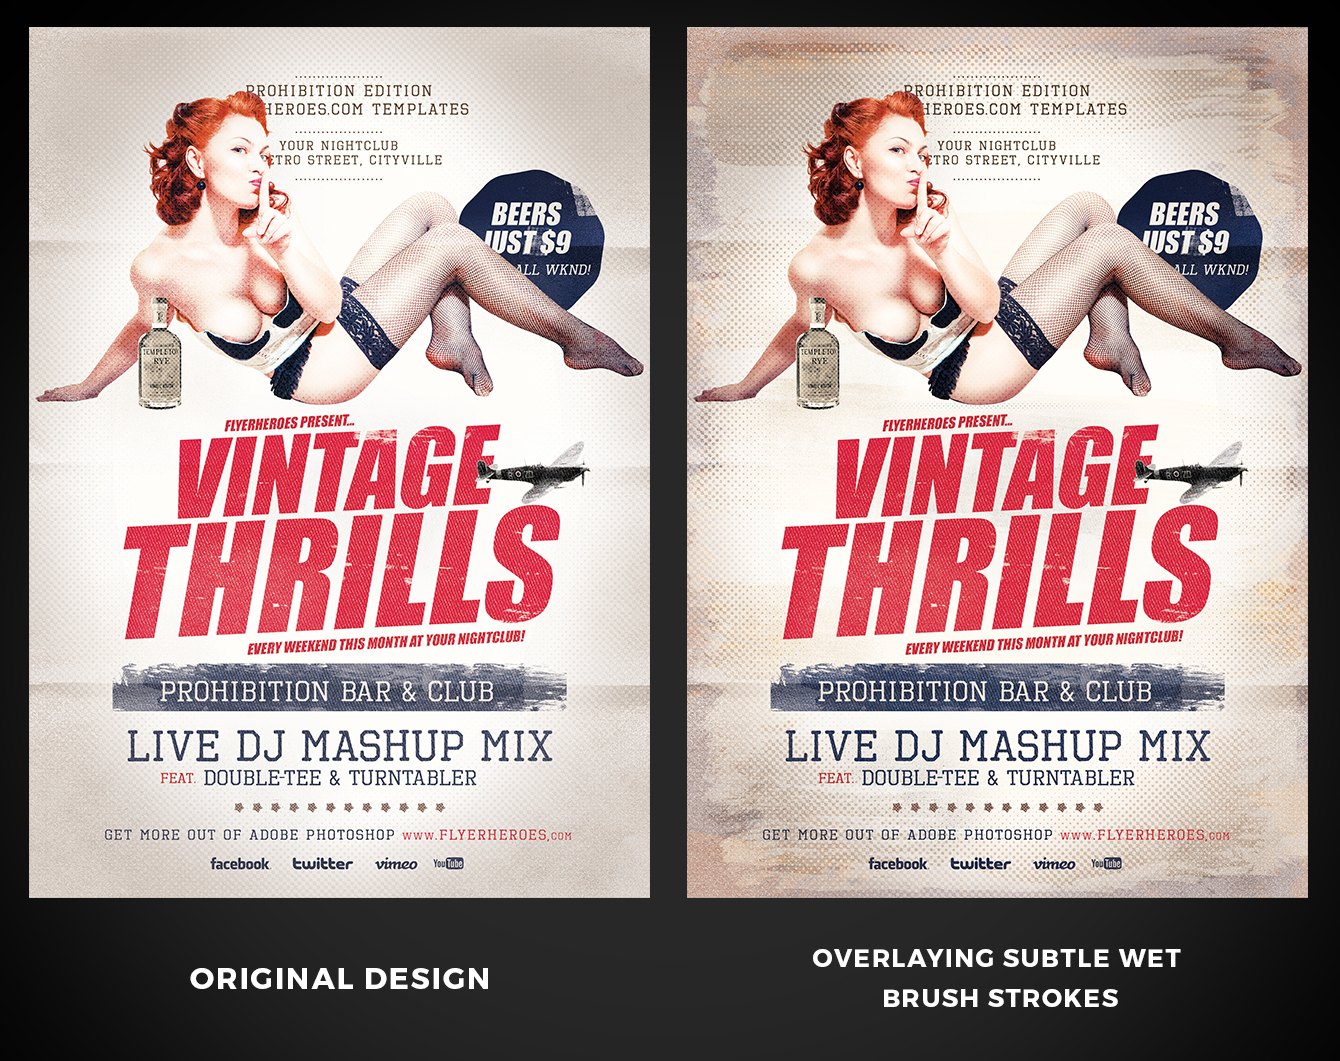 Wet Brush Stroke Wash example on Vintage Thrills Flyer Template